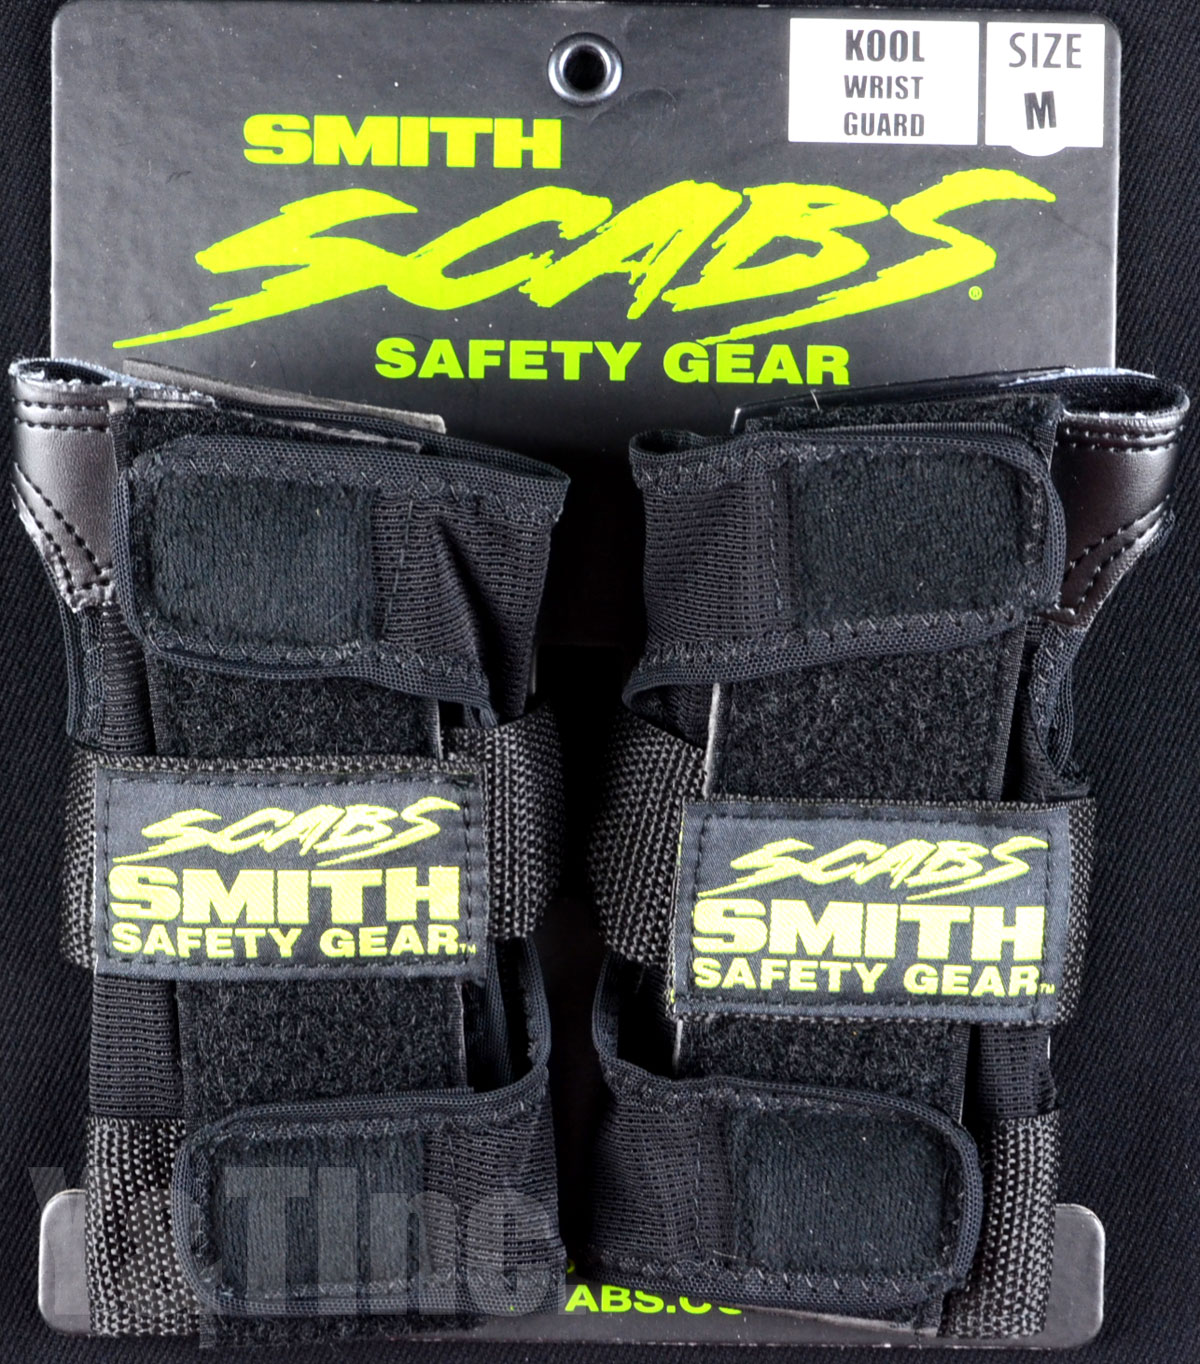 SMITH SCABS COOL WRUST GUARDS M 1